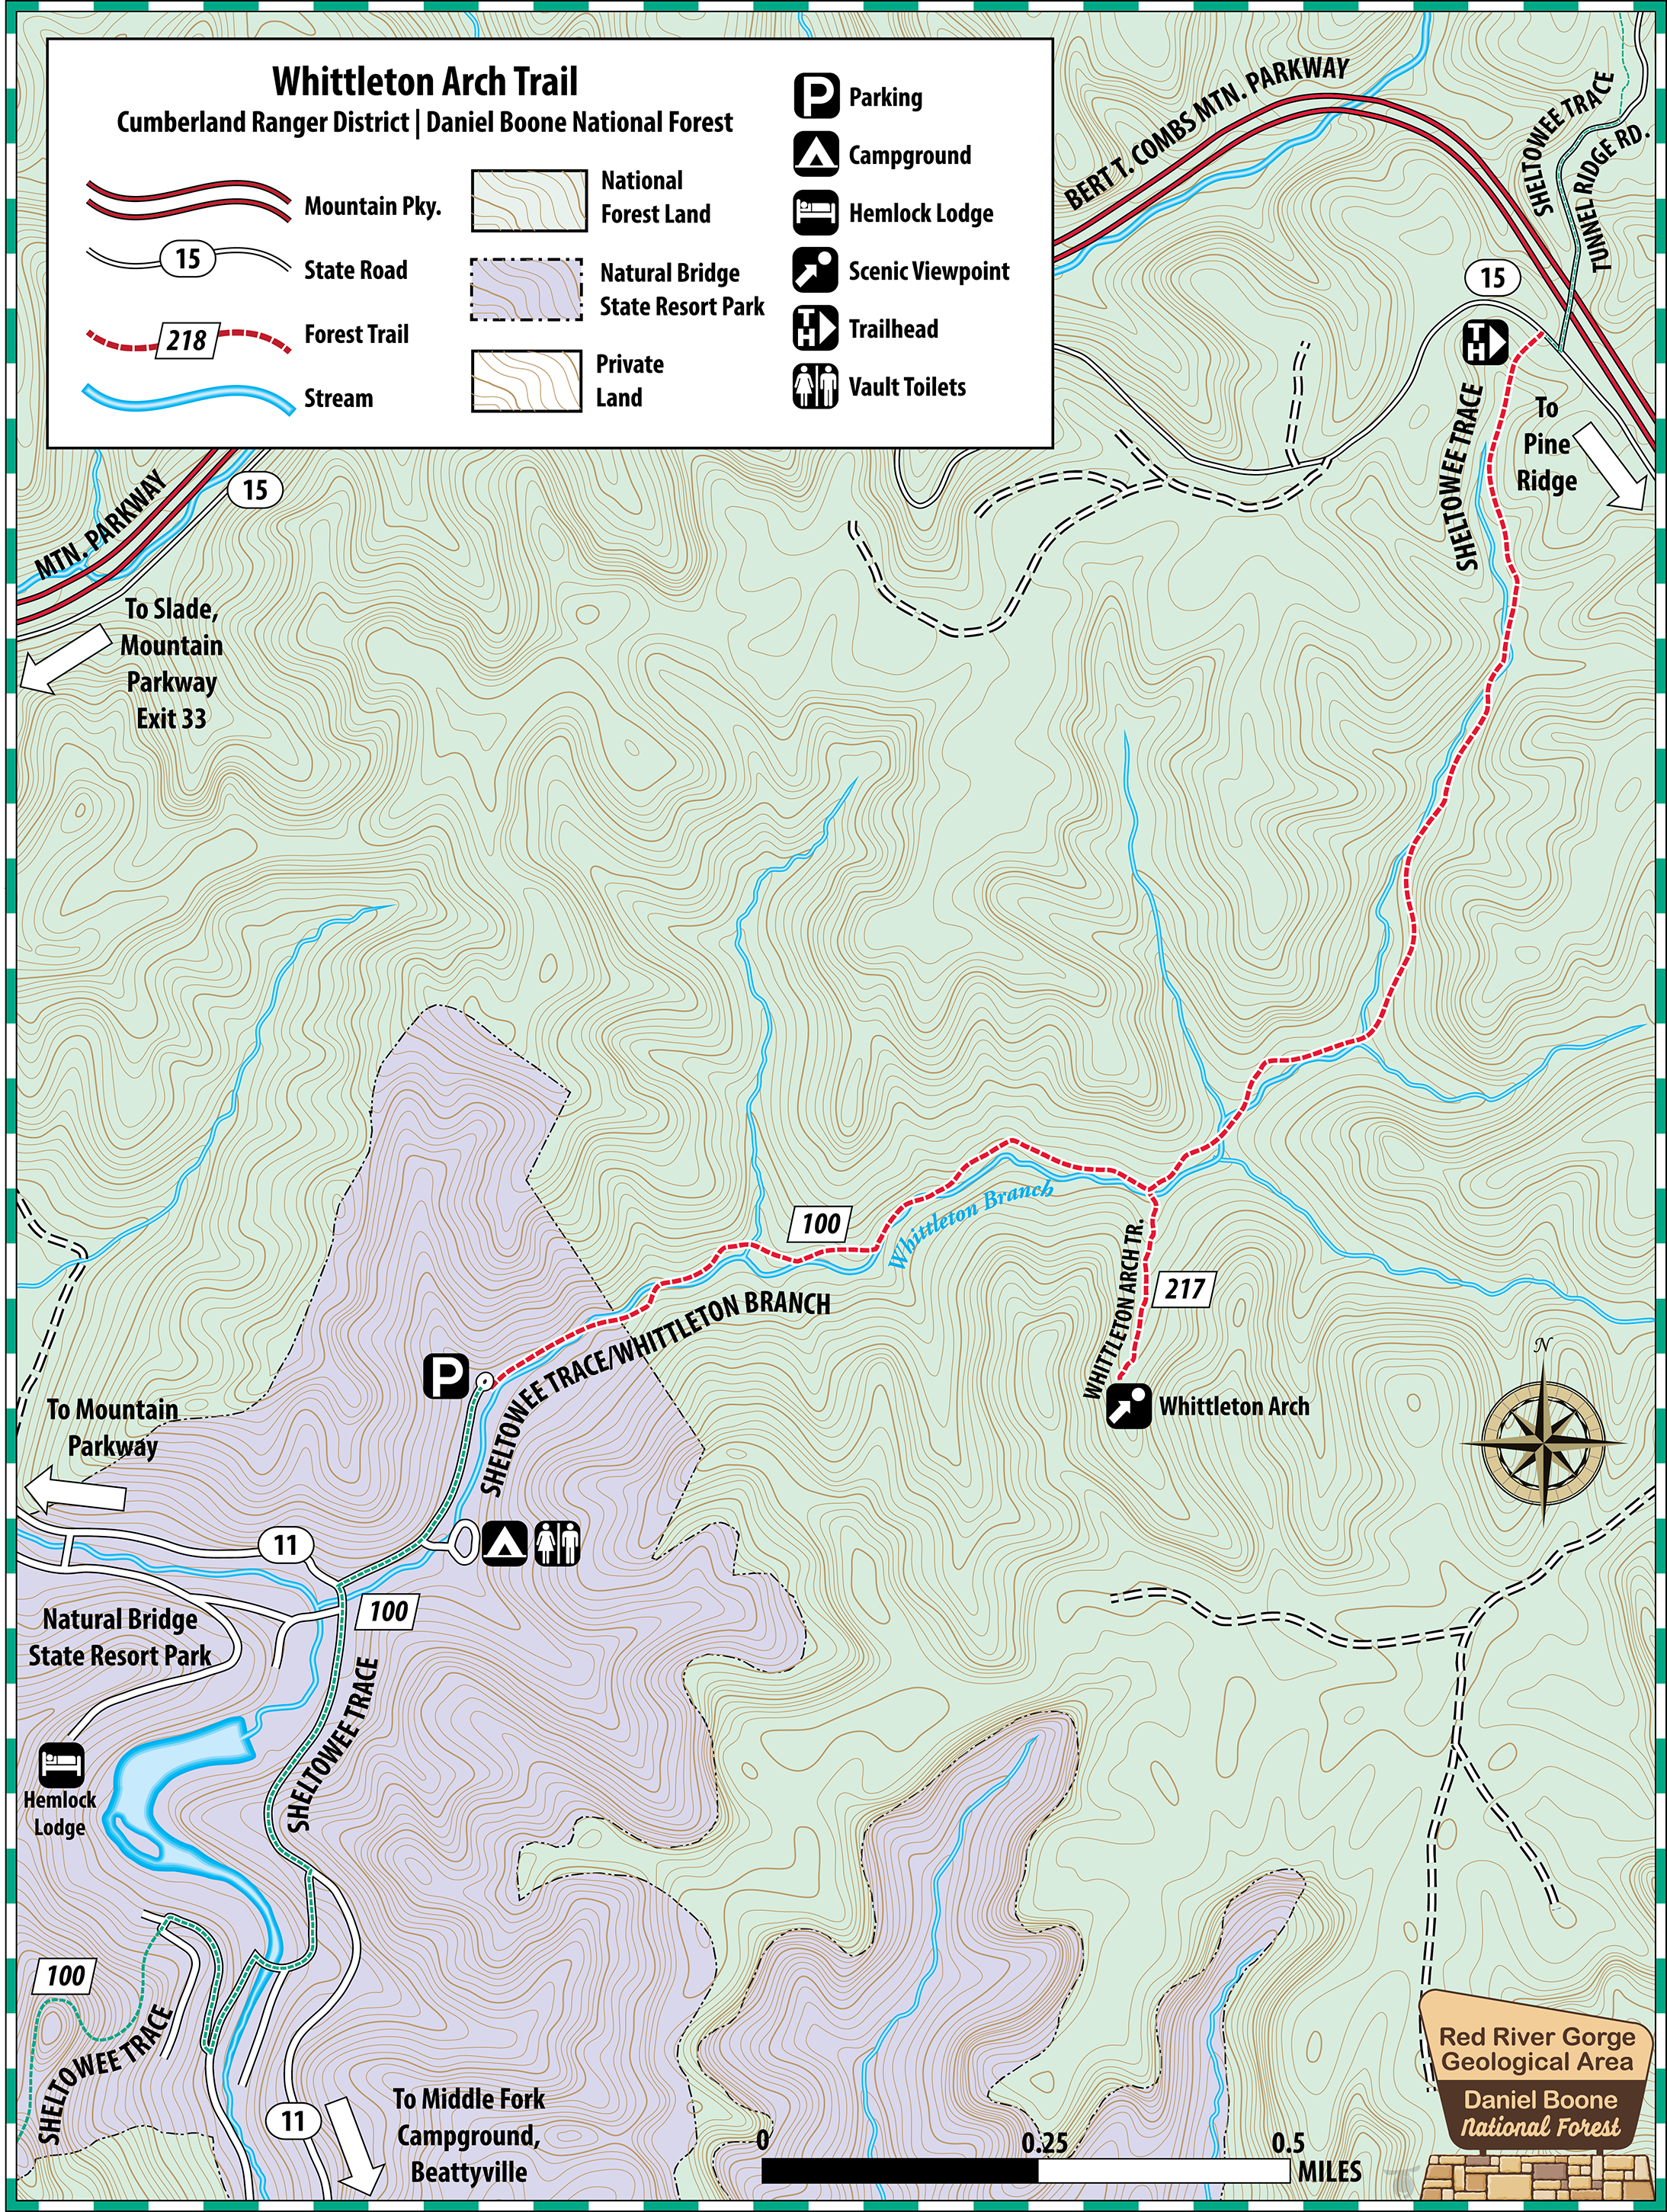 Daniel Boone National Forest on sheltowee trace trail map, united states trail map, royal blue atv trail map, giant sequoia national monument trail map, simon kenton trail map, town of bridgewater ma map, wagon train trail map, boone cliffs trail map, chief joseph trail map, national road, mountain to sea trail map, mark twain trail map, old spanish trail, omaha trail map, gap trail map, marco polo trail map, pickett state park trail map, kit carson trail map, ross prairie trail map, natchez trace, big south fork trail map, great wagon road, cleveland national forest trail map, south mountain trail map, santa fe trail,